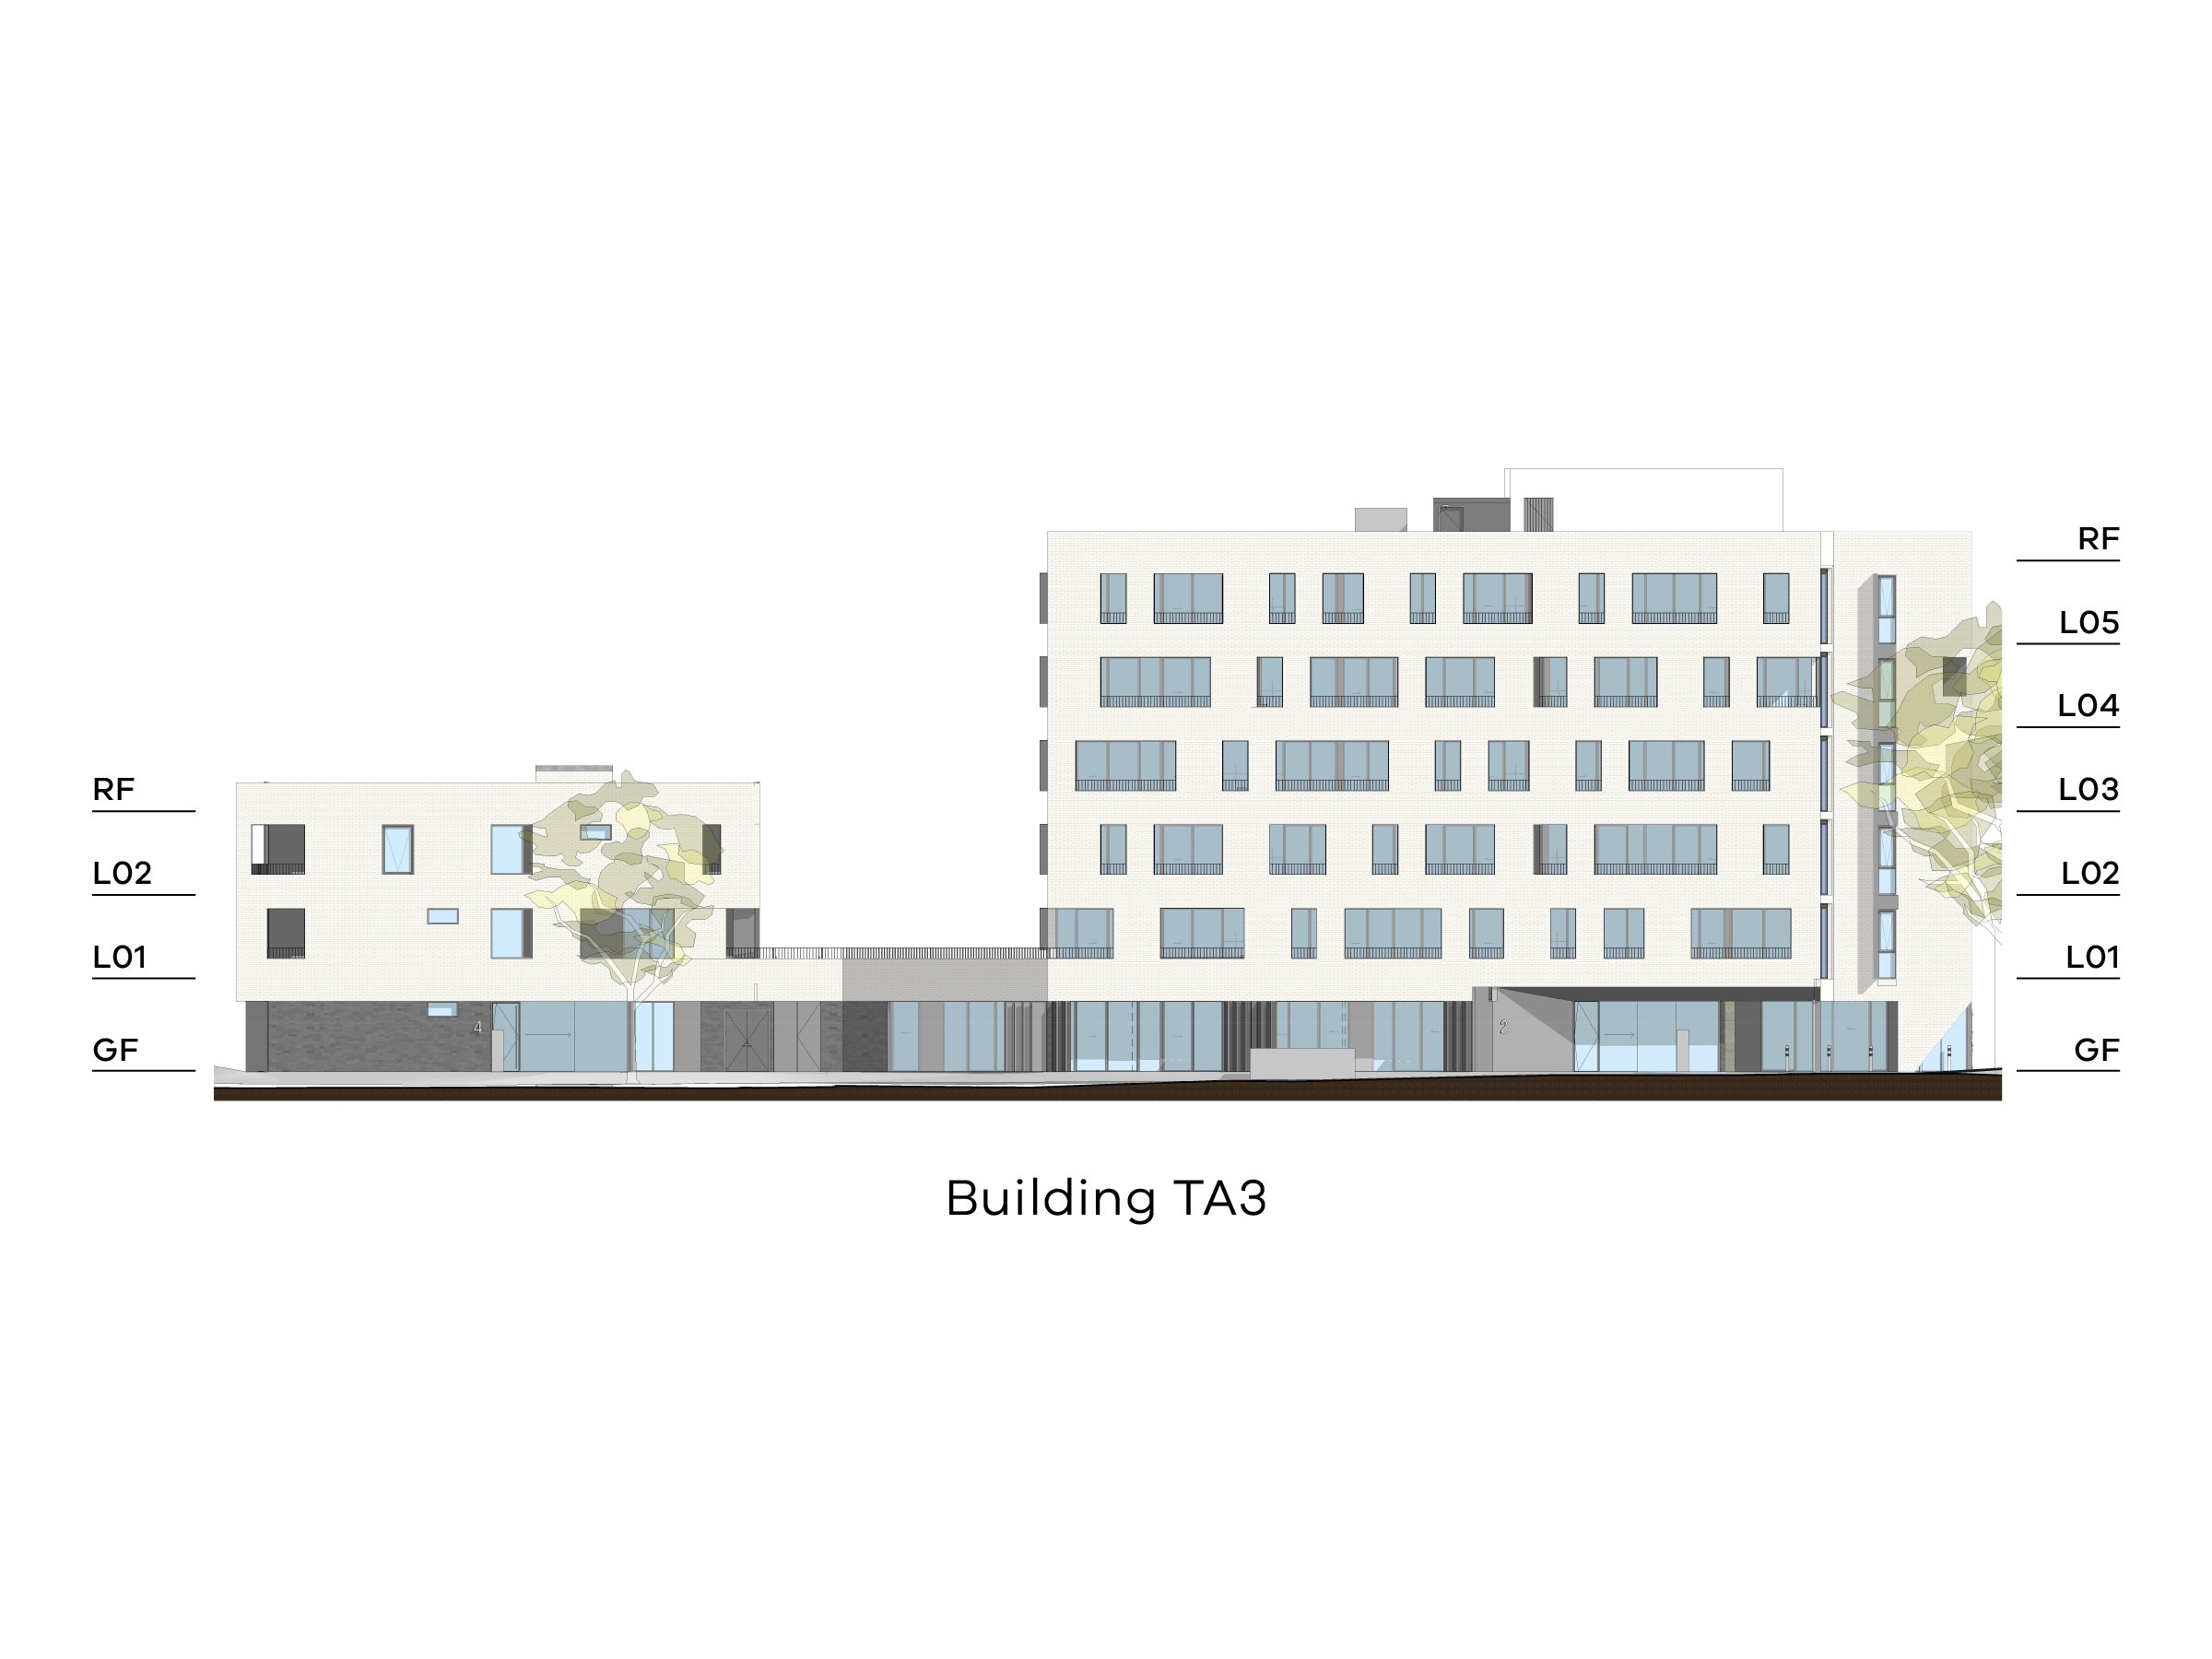 Diagram showing the height of building TA3 as seen from Tarakan Street. Building TA3 has different heights with a ground floor, level 1-2 and a flat roof on the northern side, a ground floor in the middle and a ground floor, level 1-5 and a flat roof on the southern side.